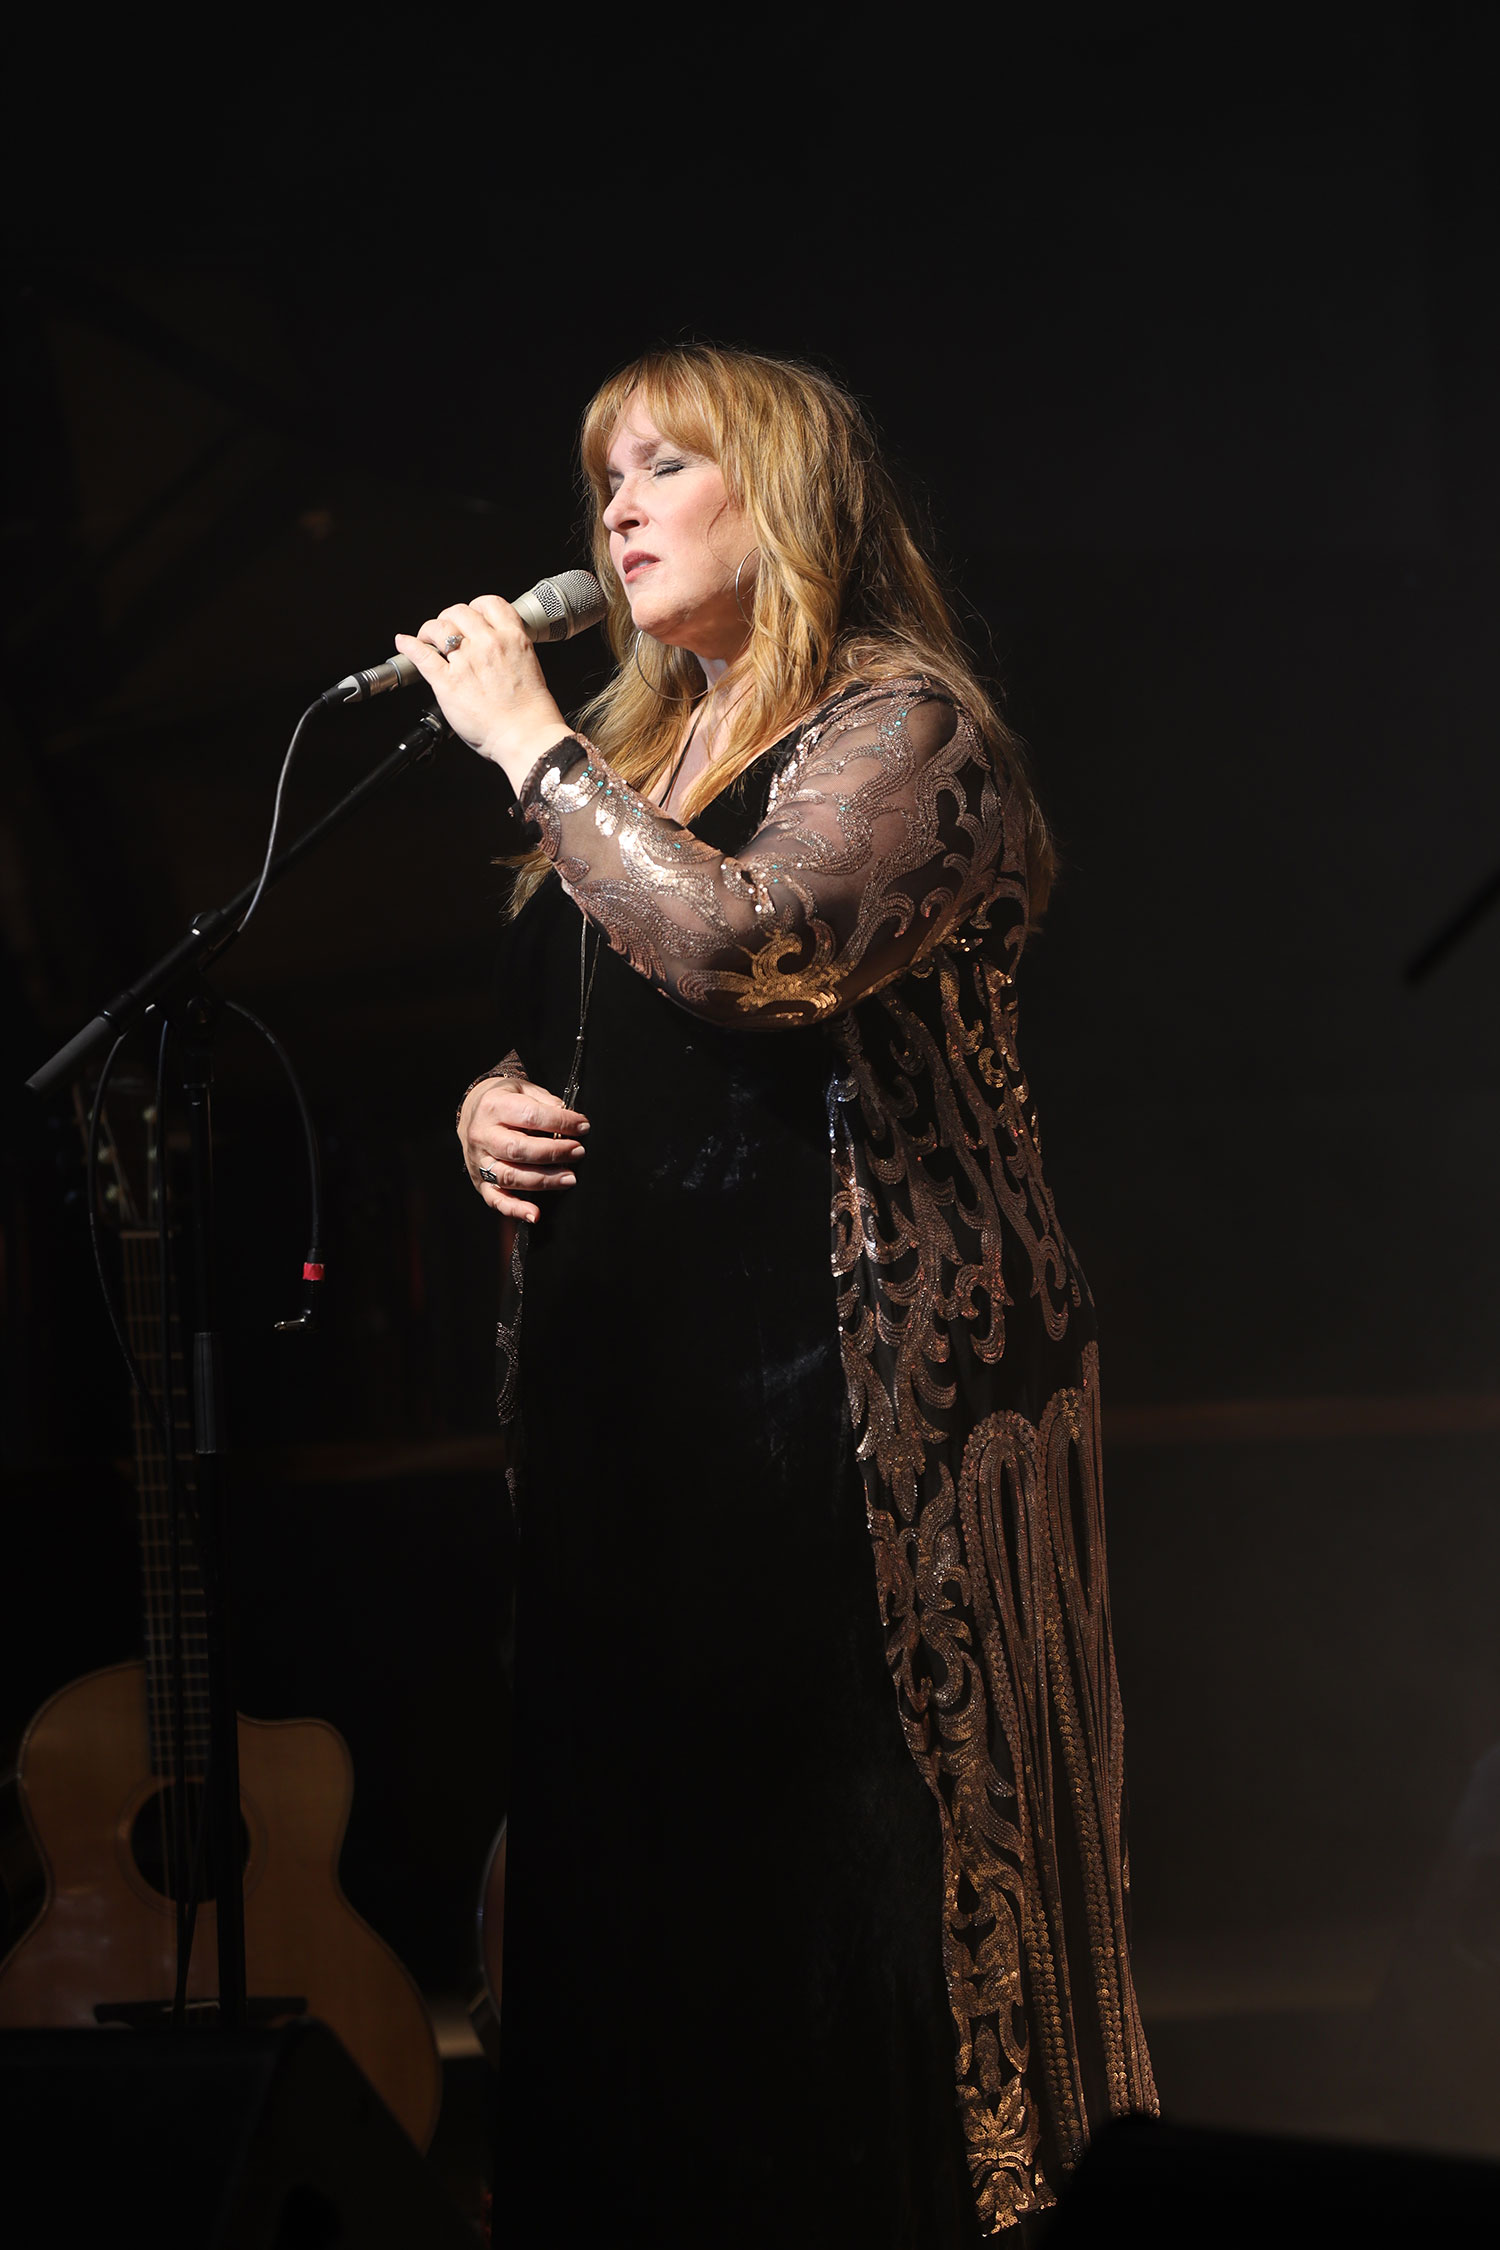 Gretchen Peters concert images